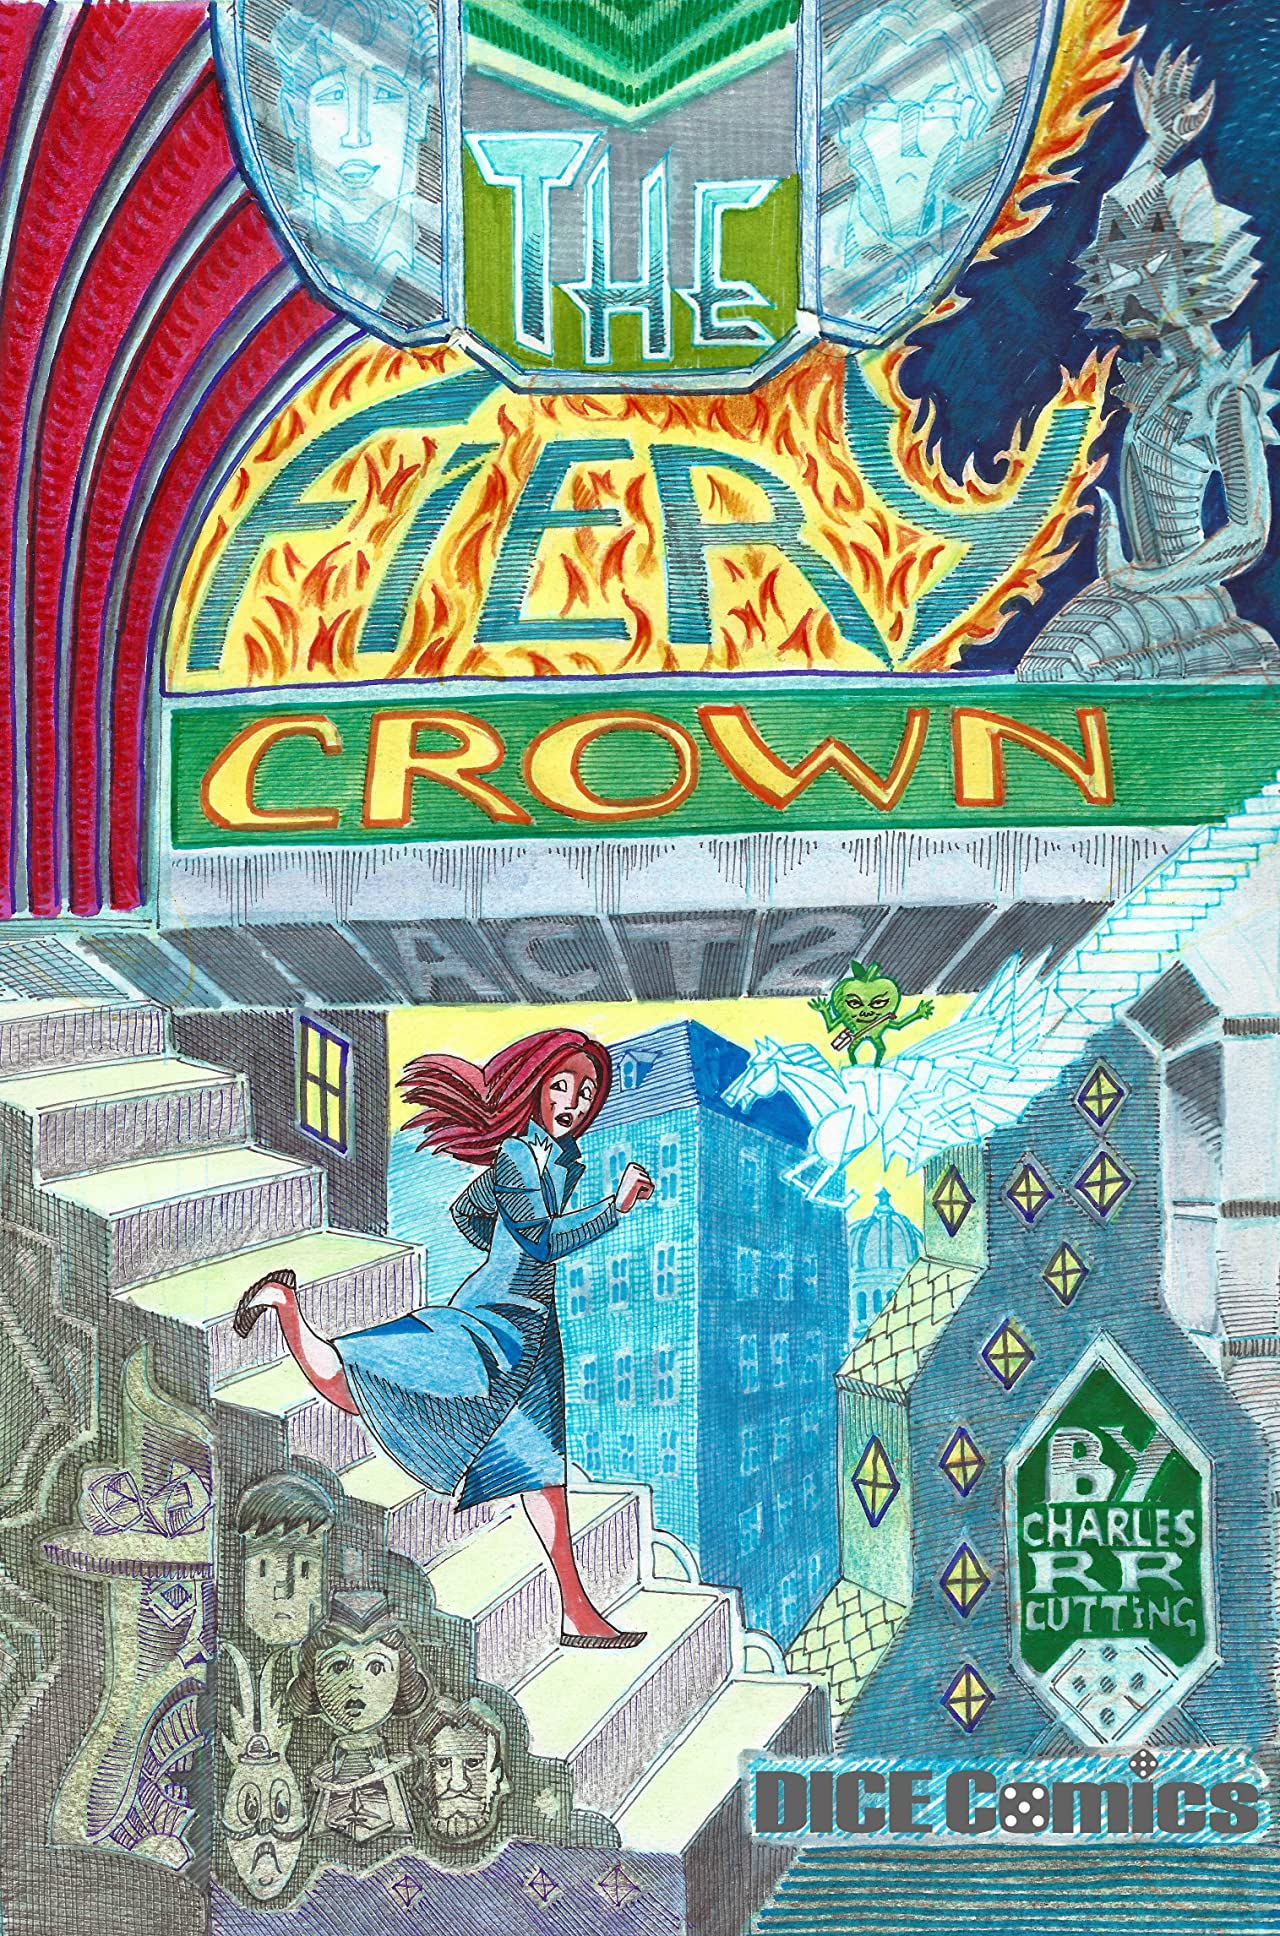 The Fiery Crown: Act 2